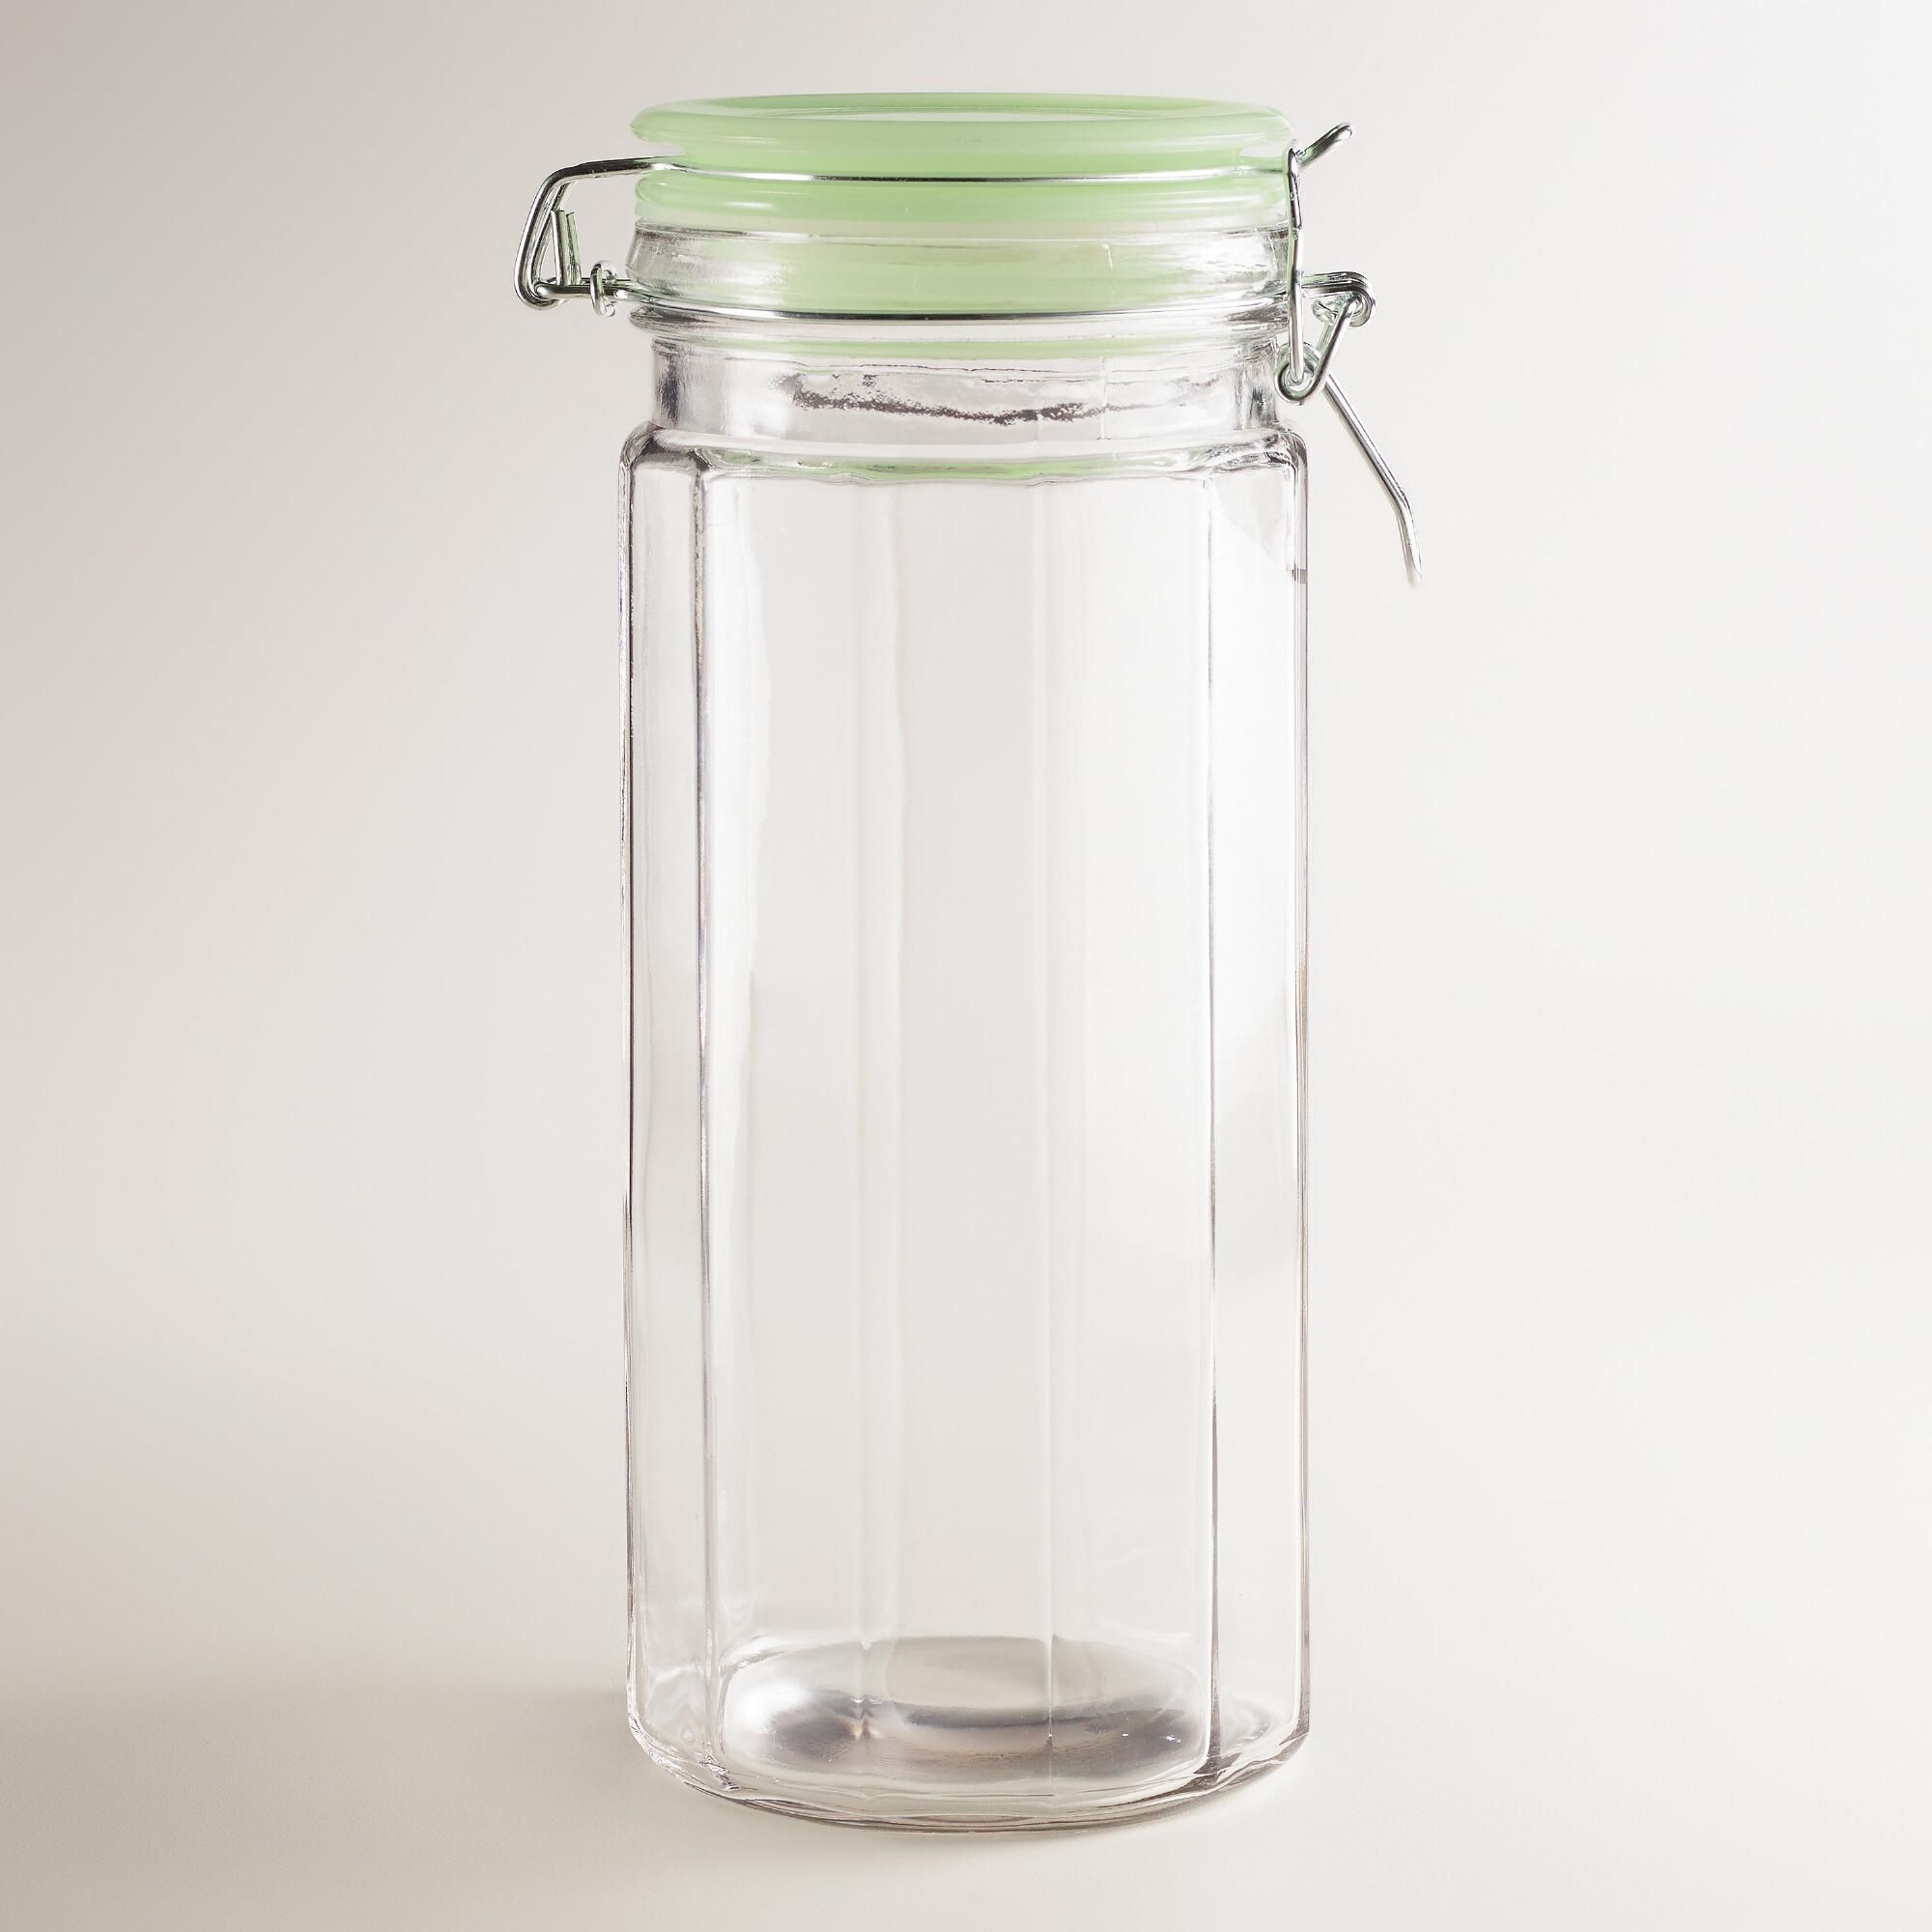 Glass Canisters With Clamp Lids